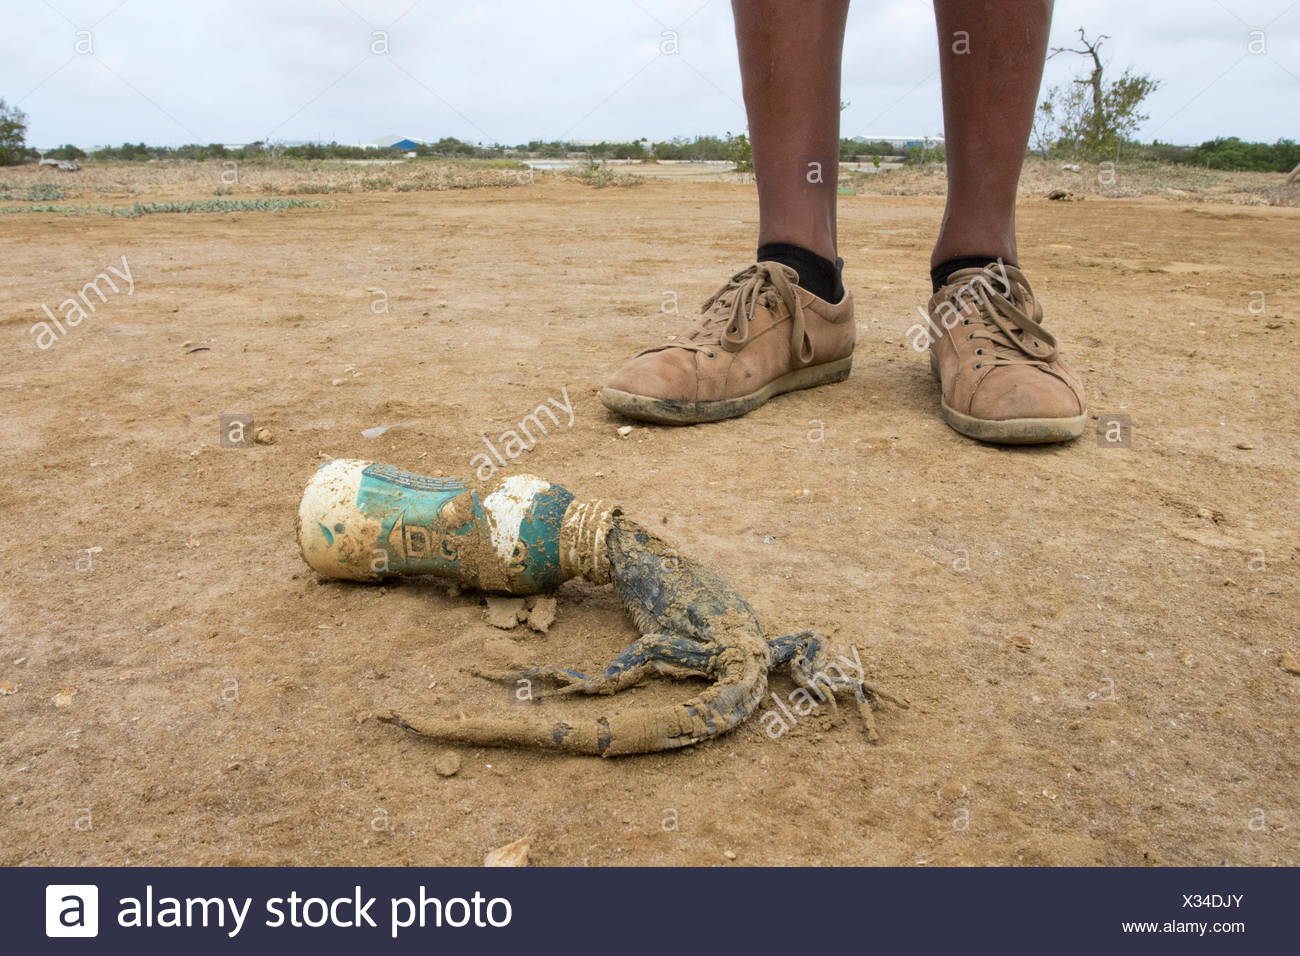 A lizard that has died after becoming stuck in a plastic bottle left as trash. - Stock Image